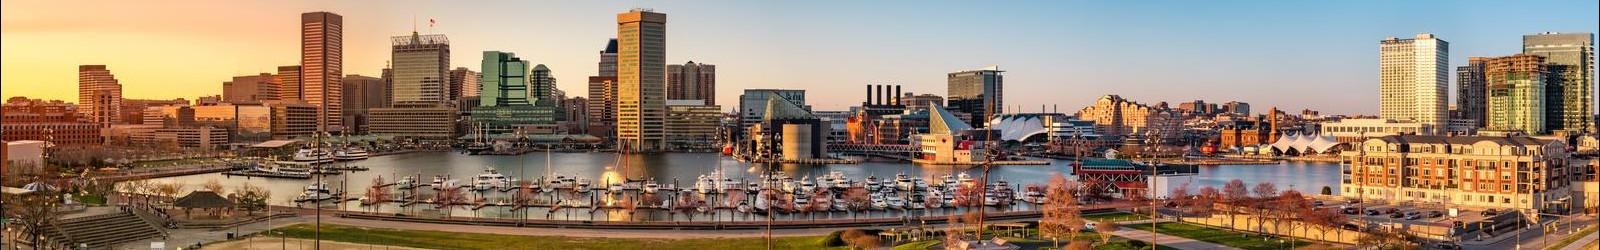 Therapists in Baltimore, Maryland: psychologists, counselors, and mental health specialists